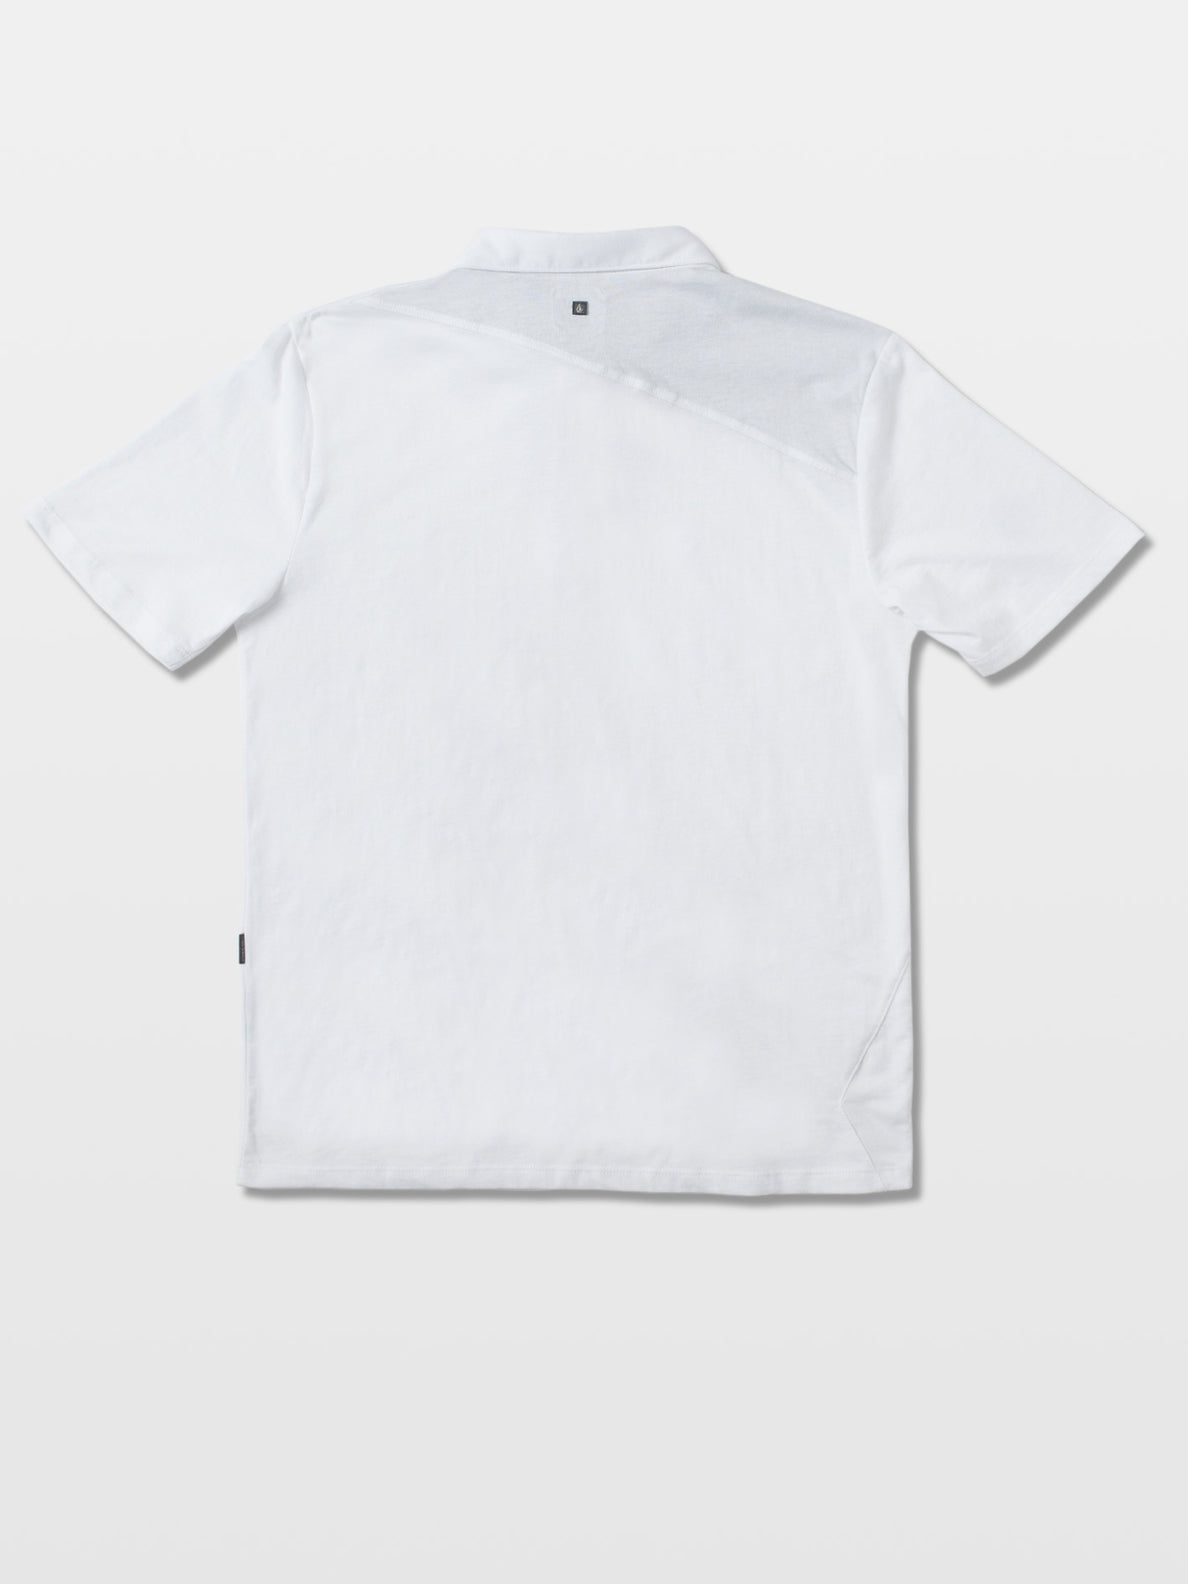 Big Boys Banger Short Sleeve Polo - White